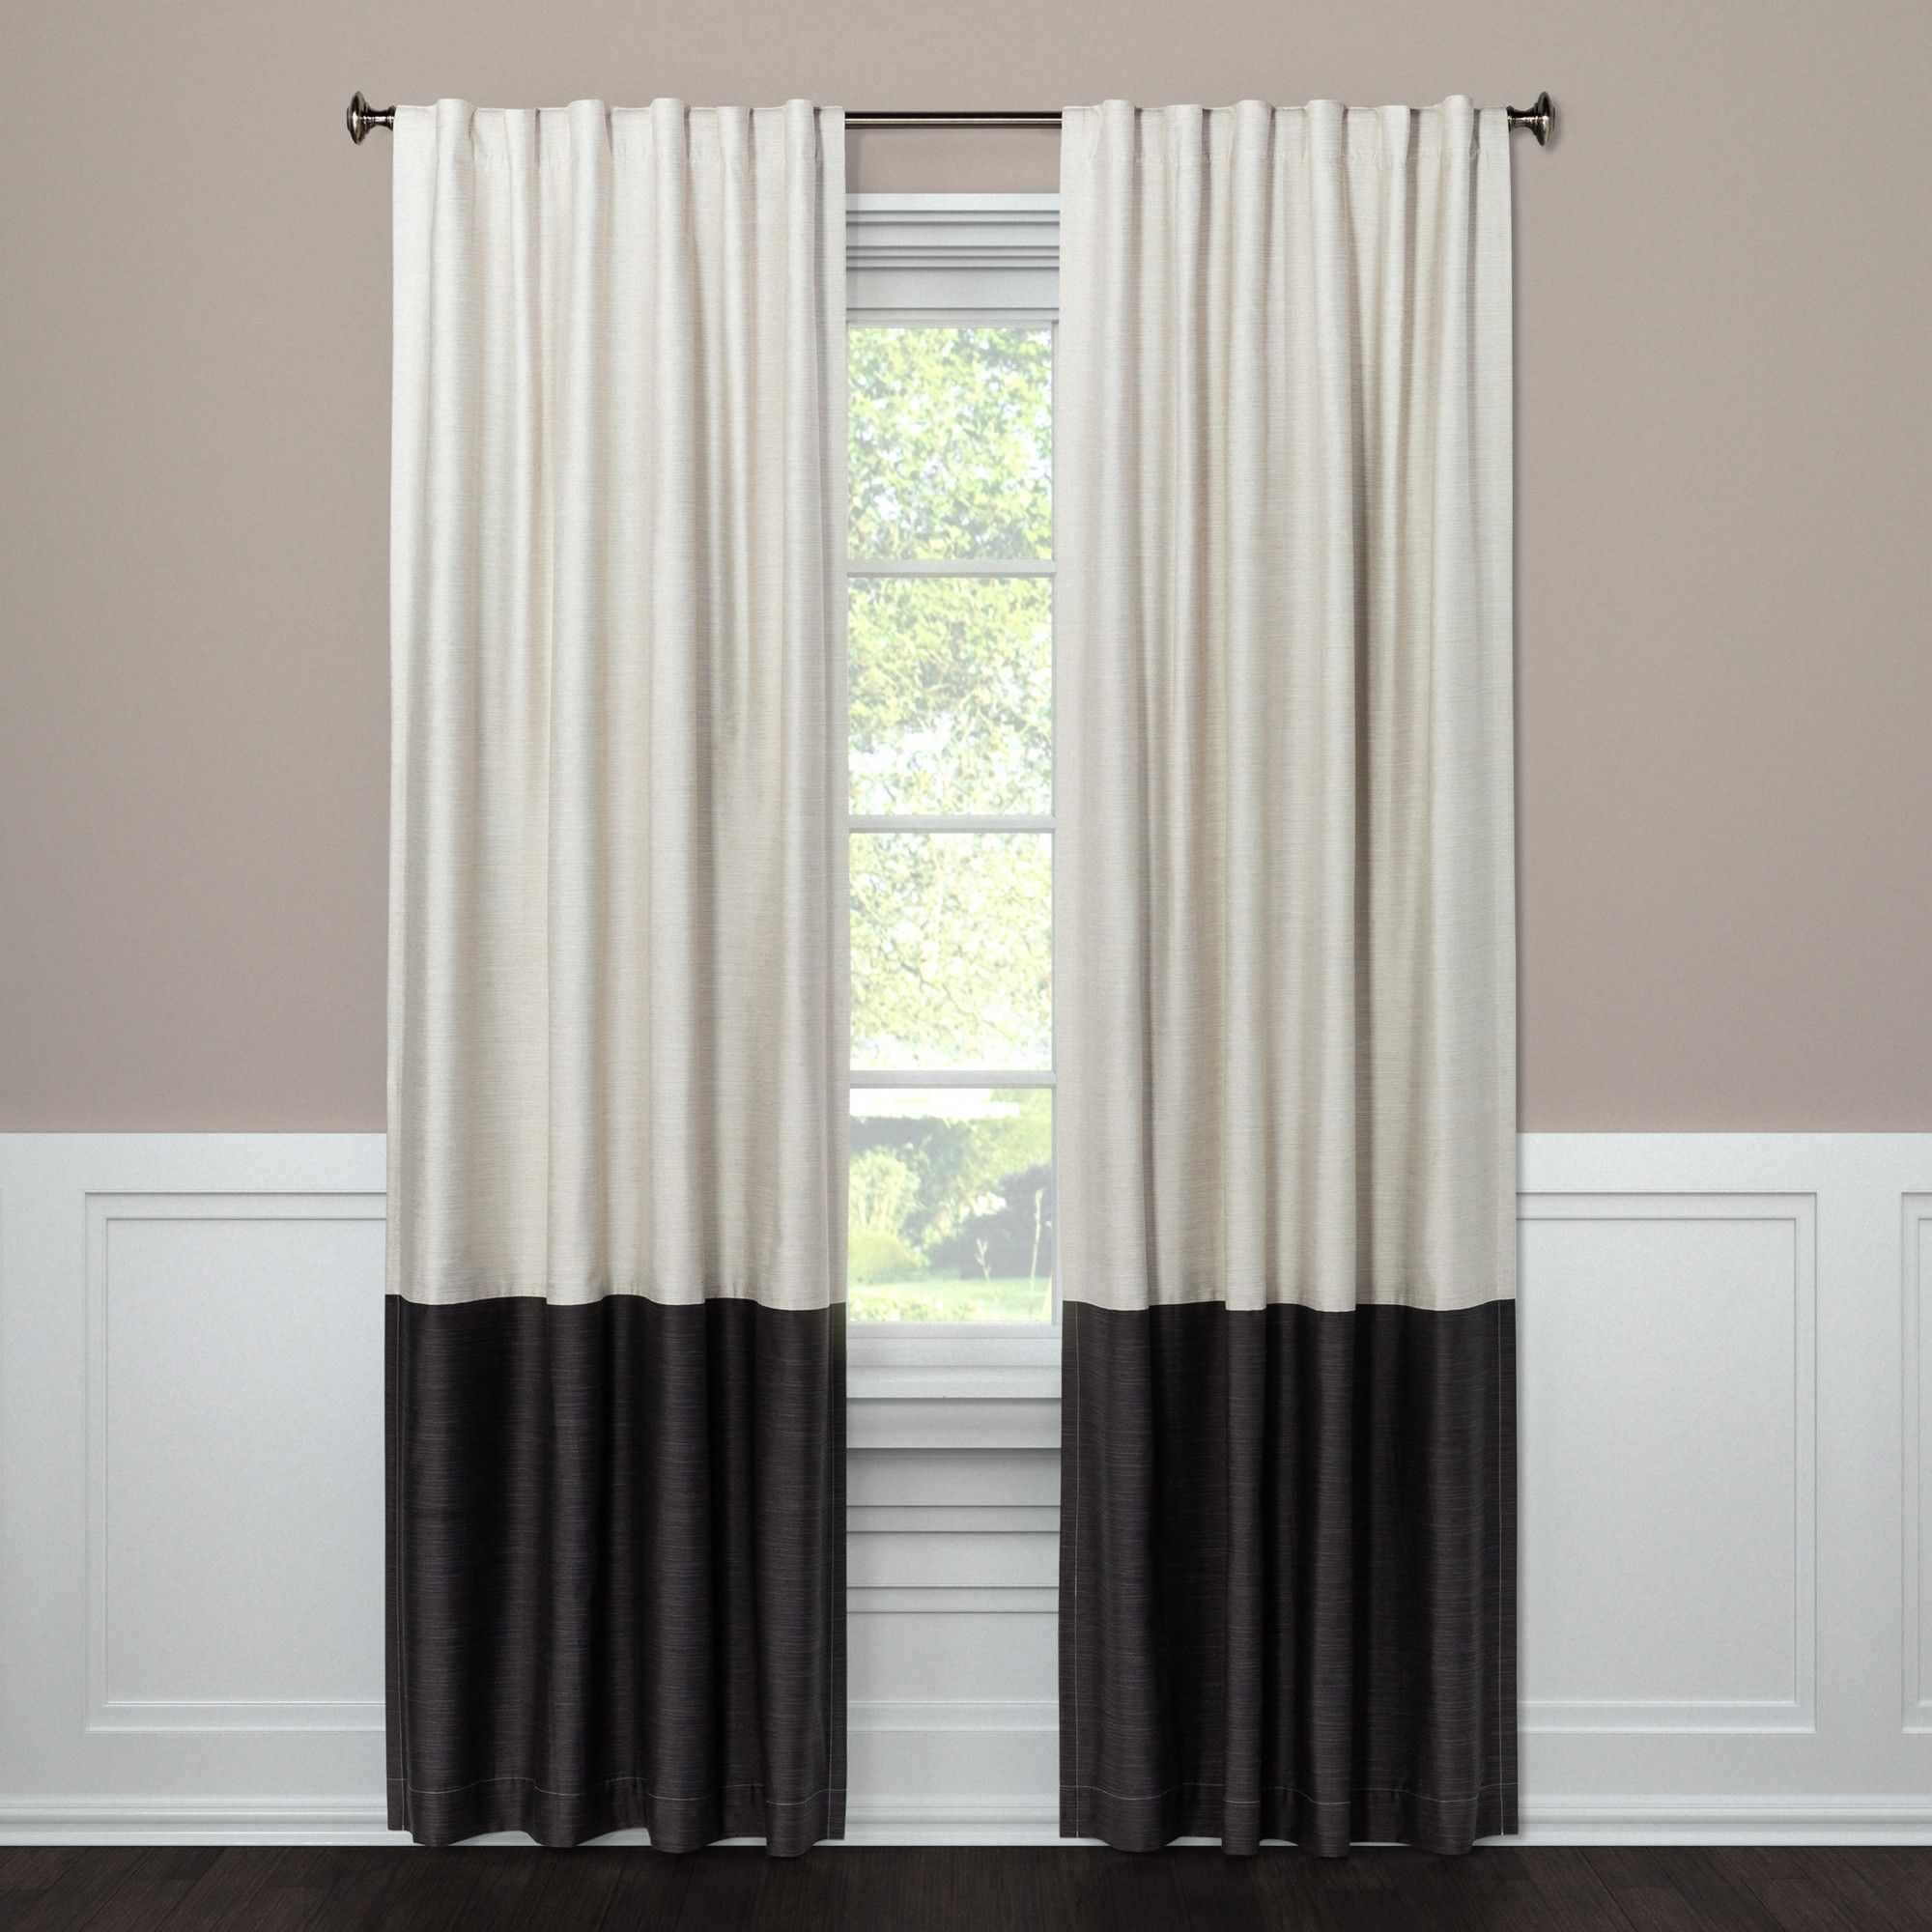 Blackout Curtain Panel Color Block Gray 108 Project 62 Panel